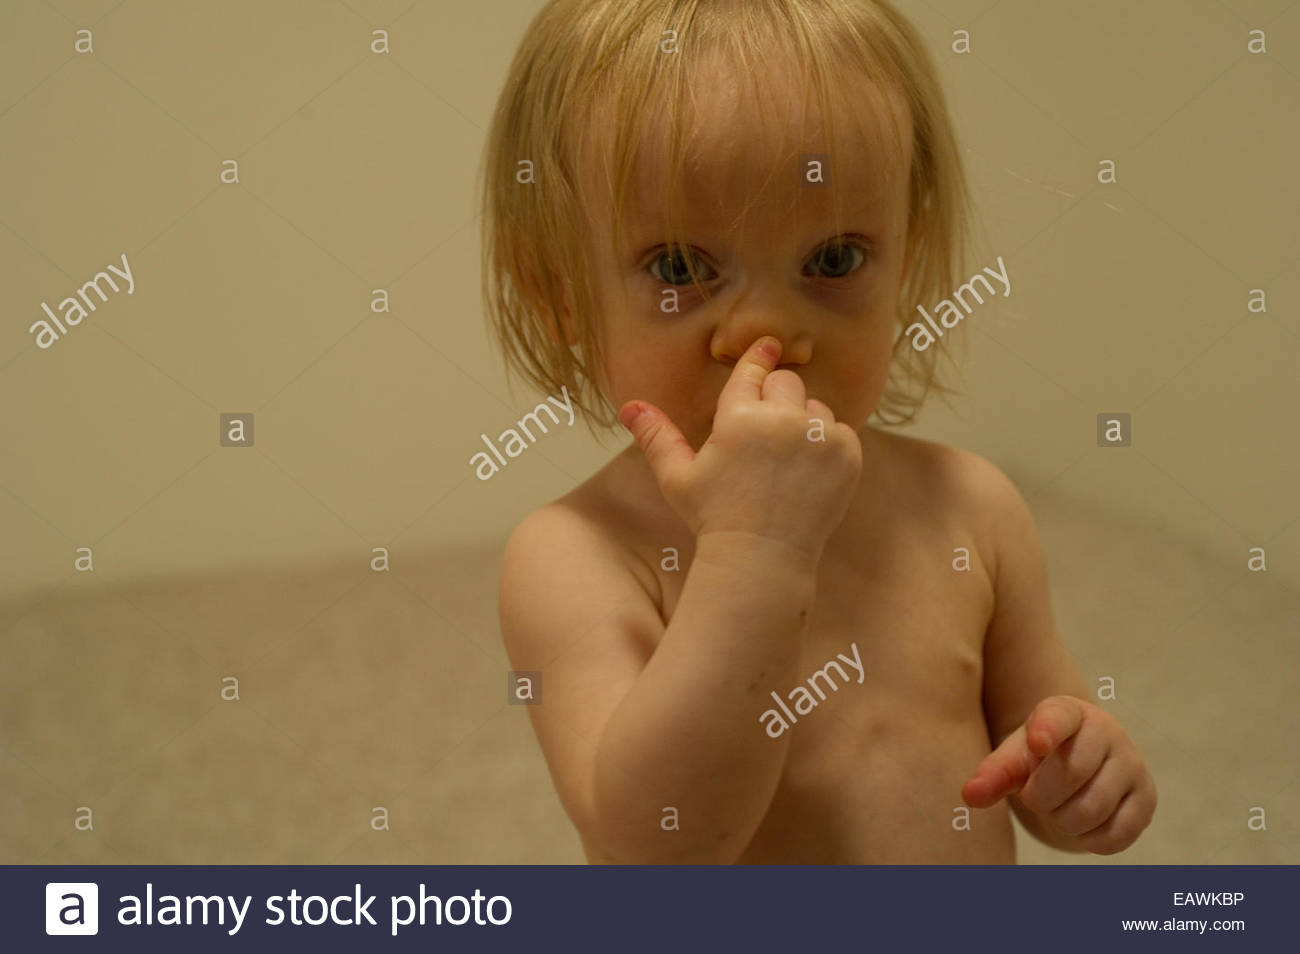 17 Month Old Stock Photos & 17 Month Old Stock Images - Alamy